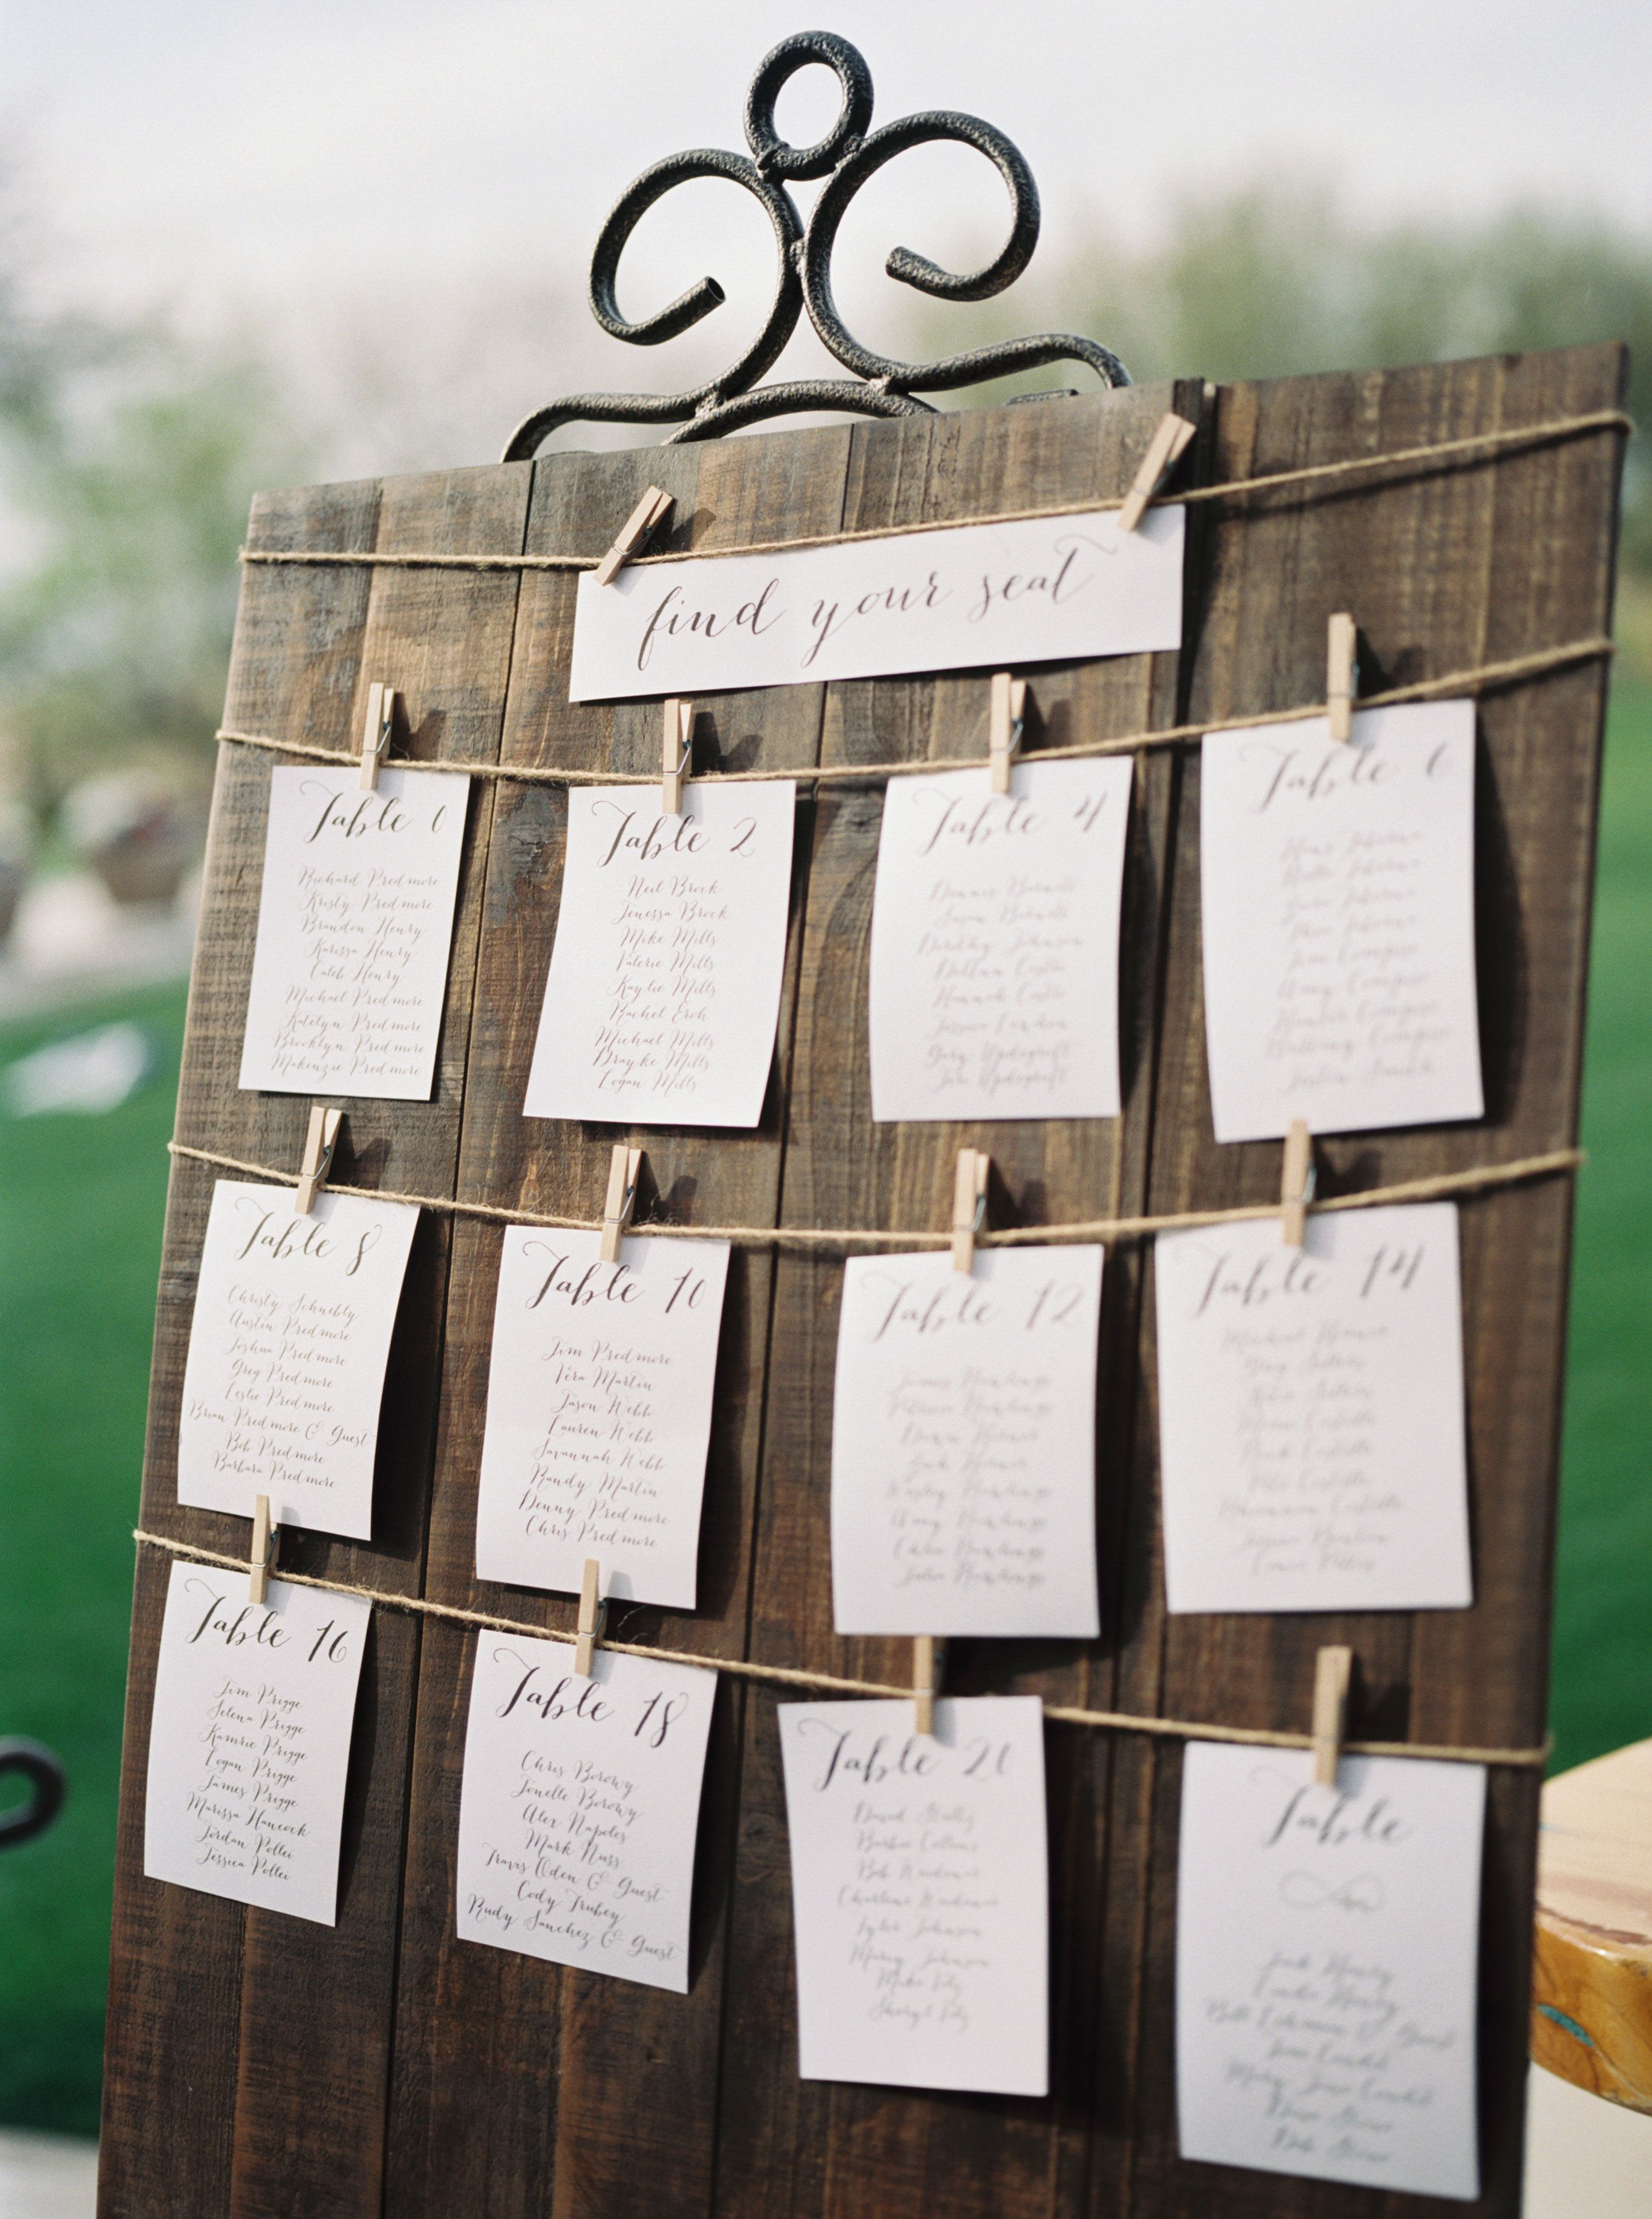 Trilogy at vistancia wedding  wooden guest seating chart with calligraphy writing on paper strung by clothespins along string also rh pinterest